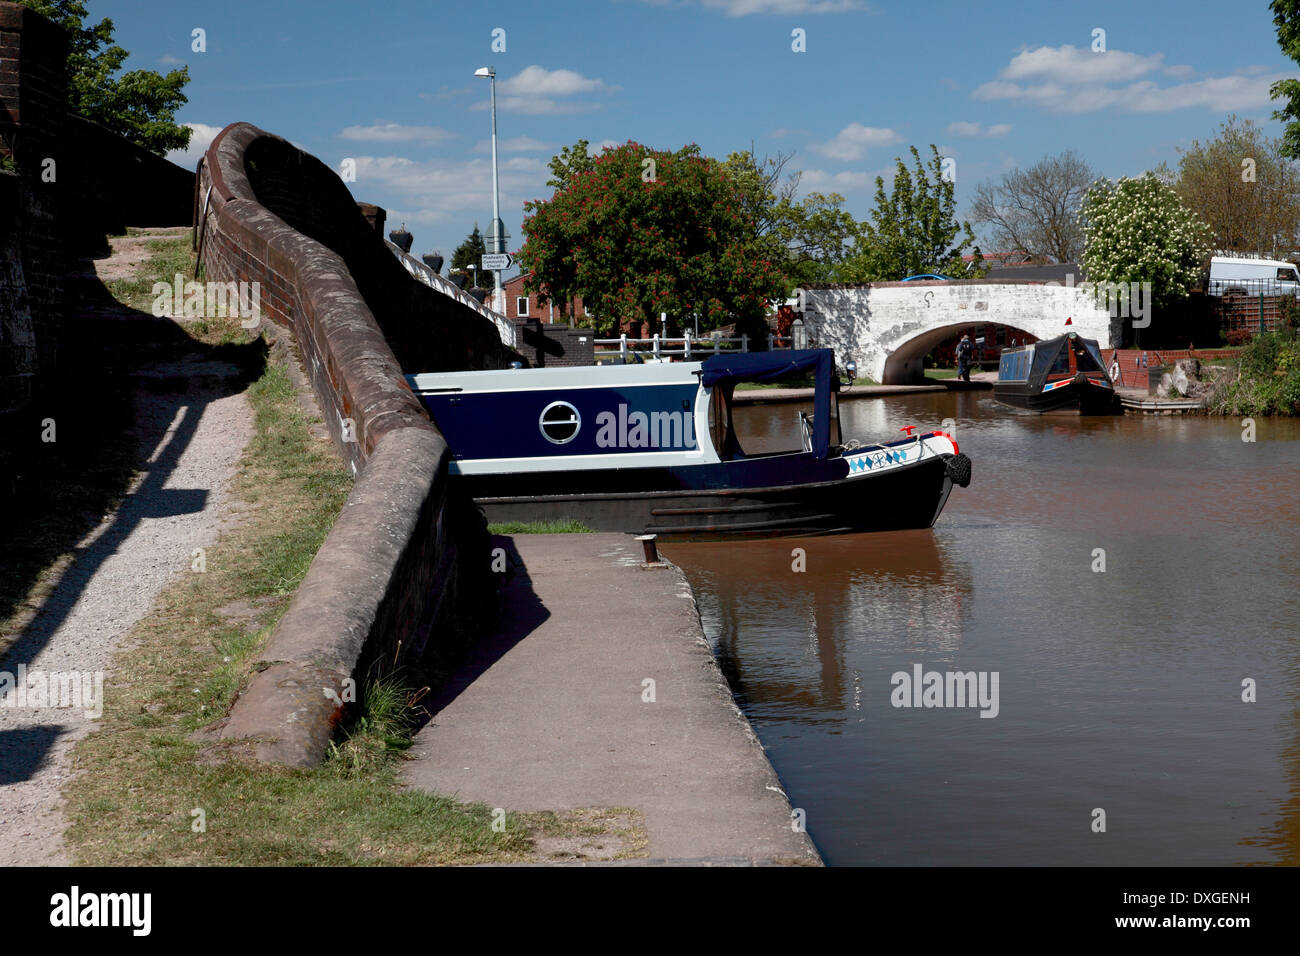 A narrowboat leaving the Shropshire Union Canal and entering the Trent and Mersey Canal at Kings Lock, Middlewich - Stock Image